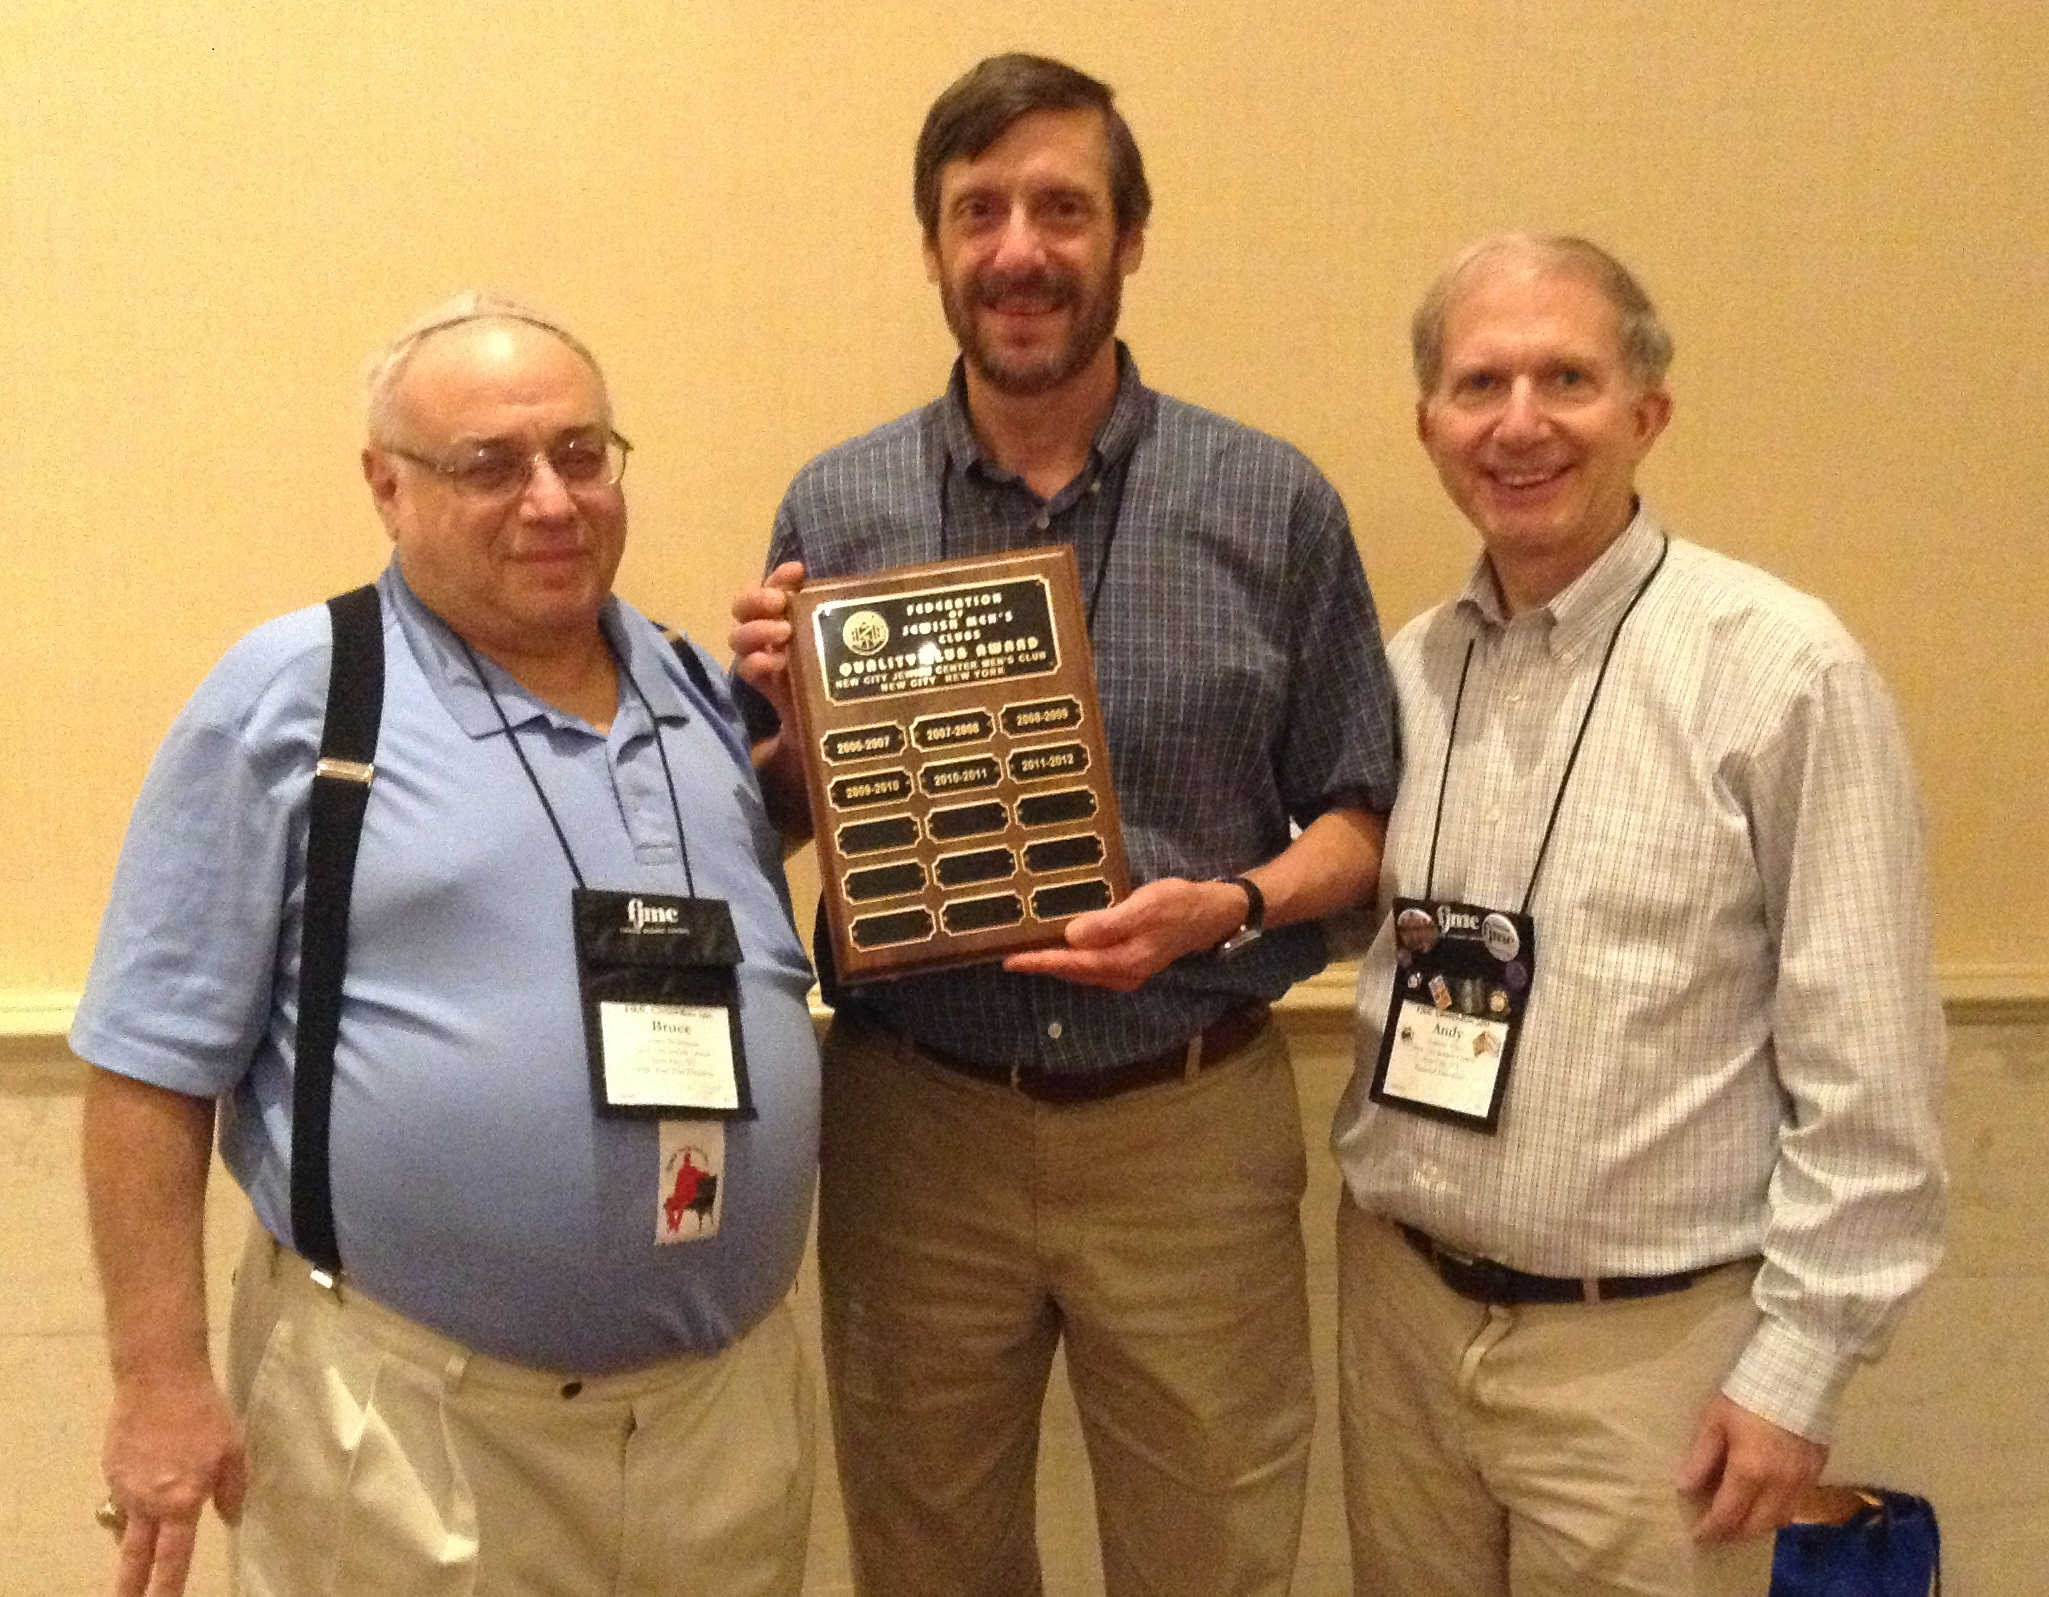 Bruce Sicherman, Bruce Green & Andy Alper with Quality Club Award.